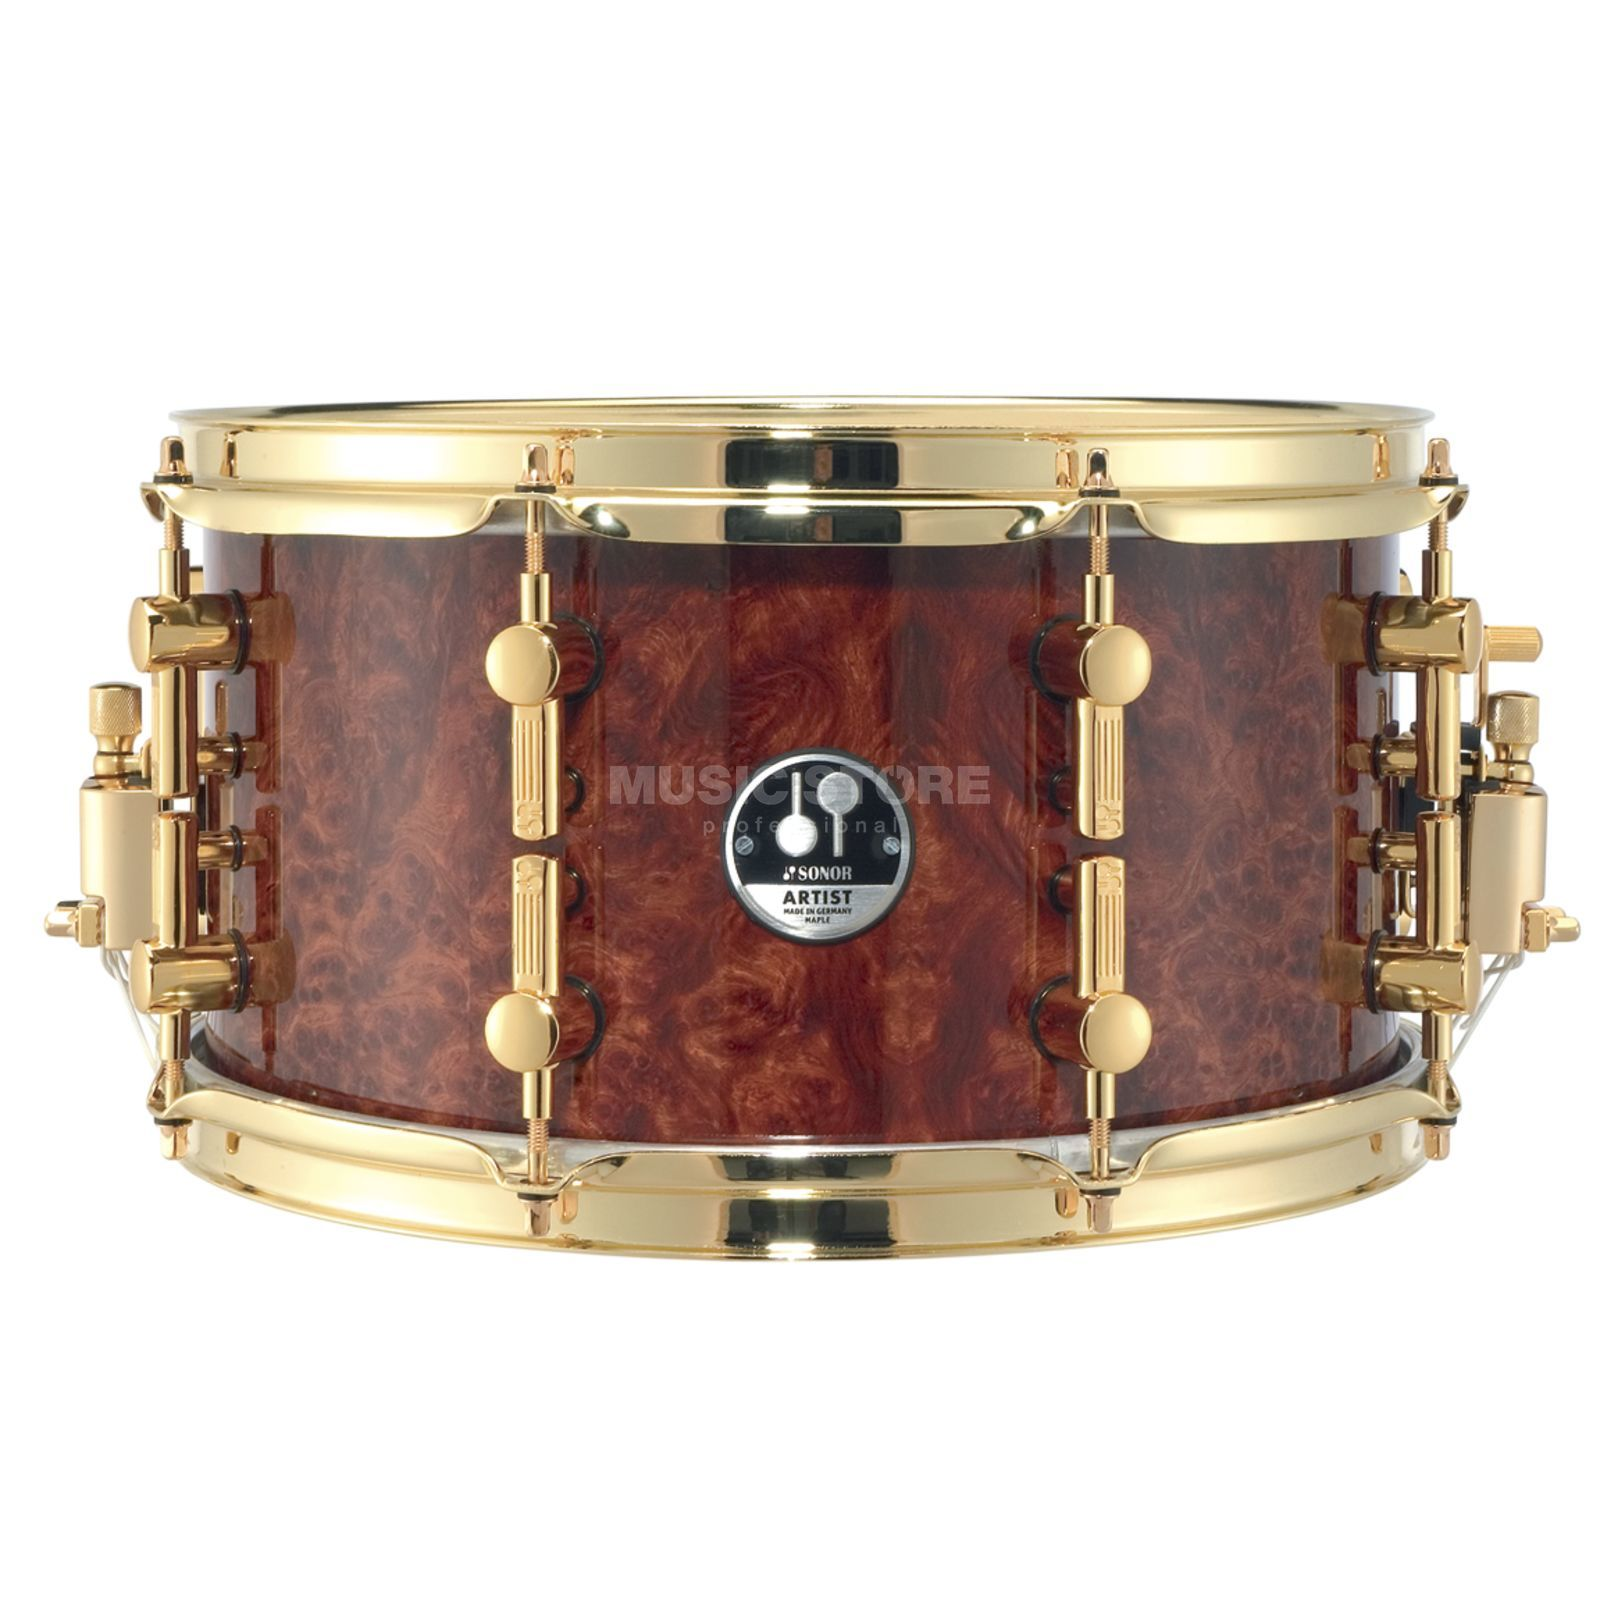 "Sonor AS071307AM Artist Snare 13""x7"" Amboina Produktbillede"